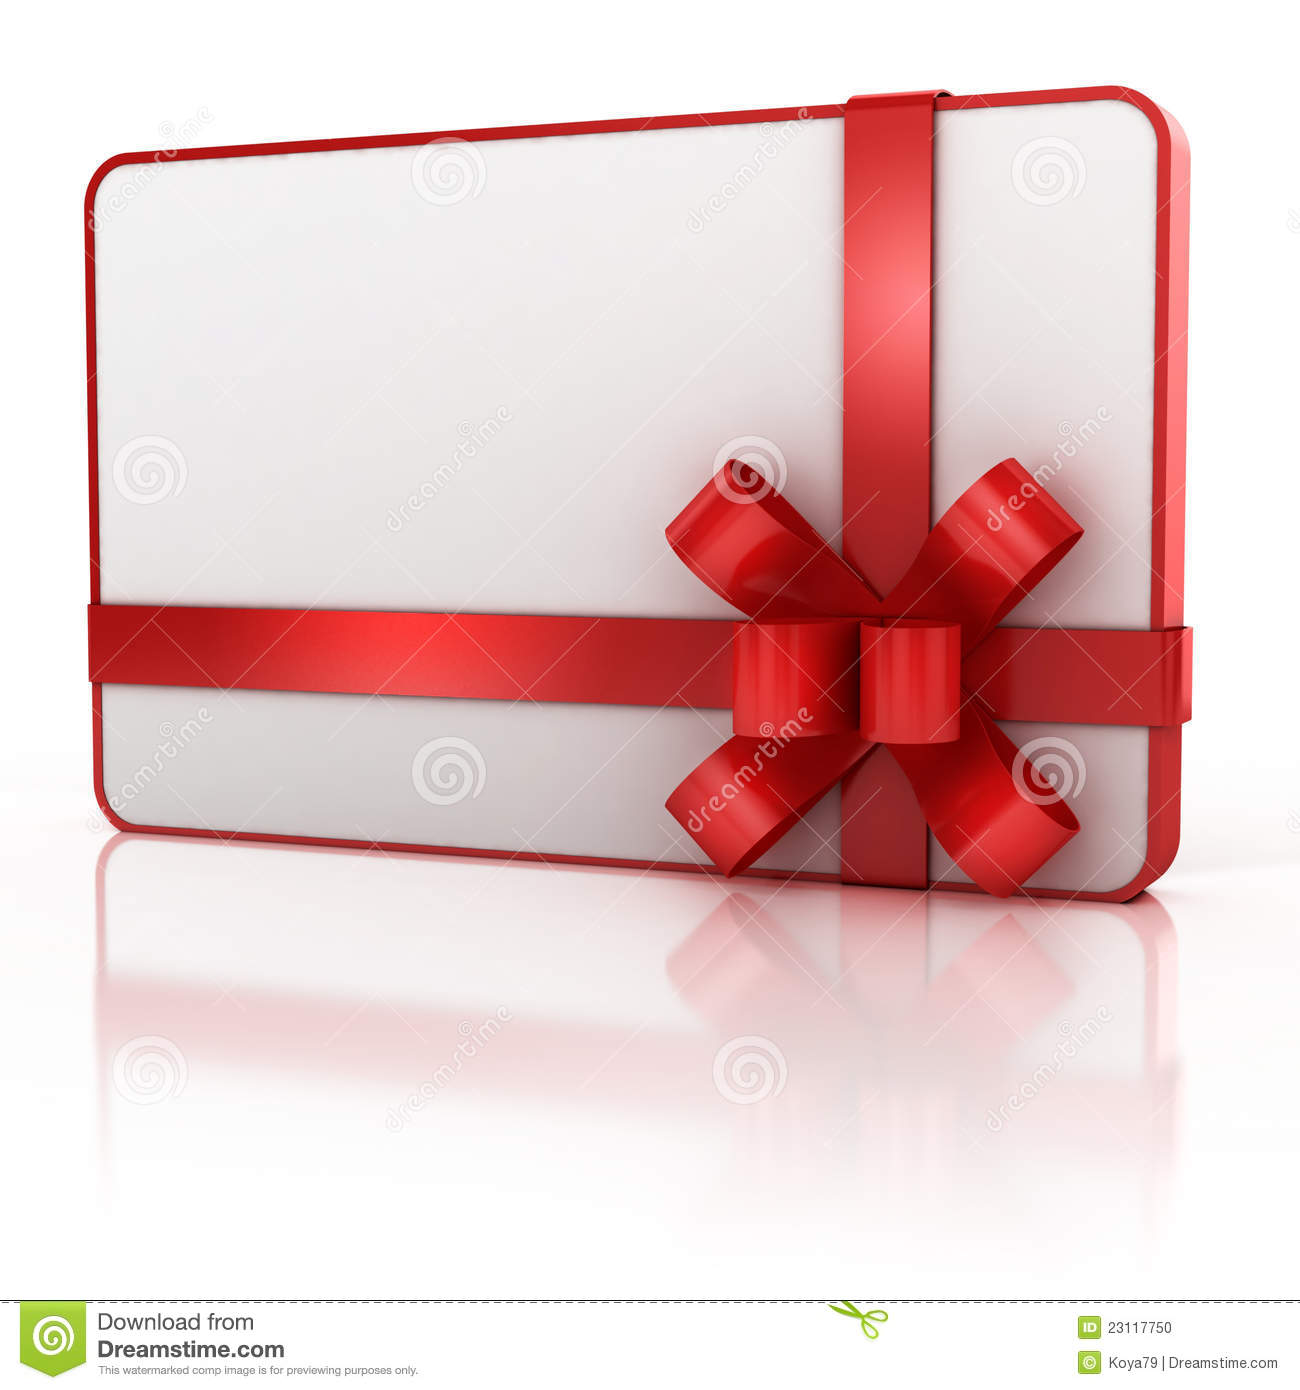 Blank Gift Card With Red Ribbon Stock Photo - Image: 23117750